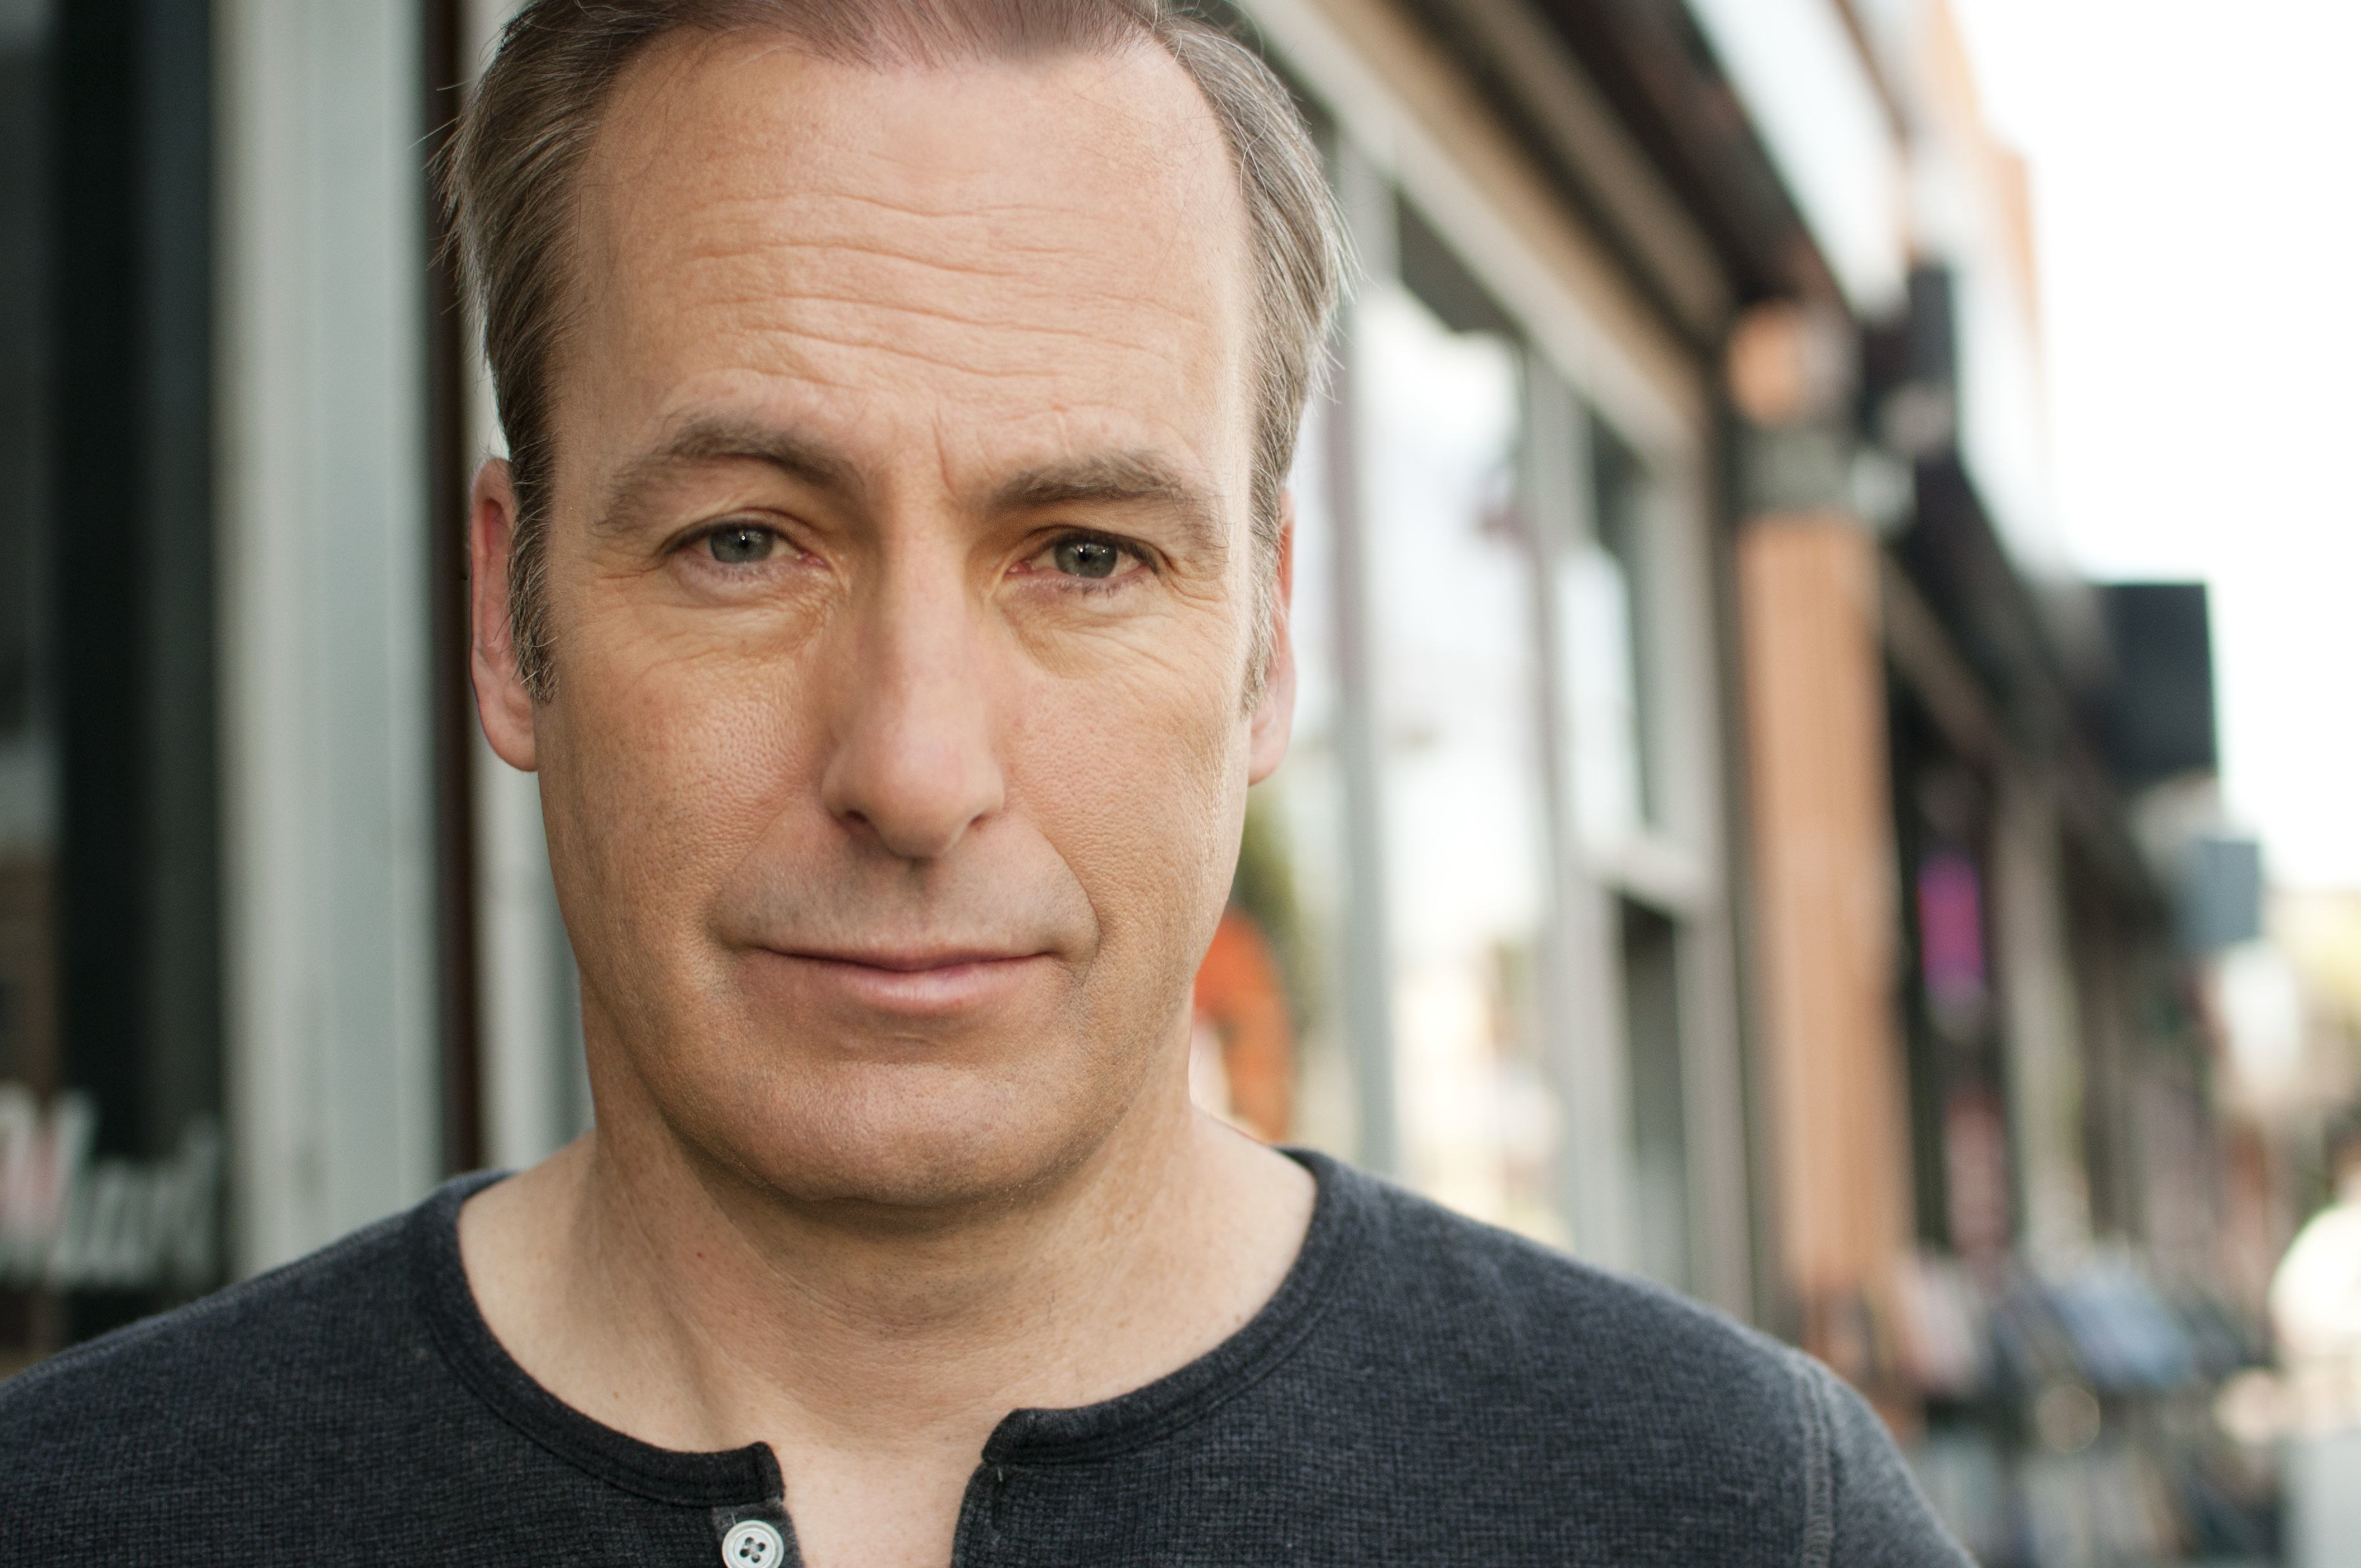 bob odenkirk youngbob odenkirk fargo, bob odenkirk young, bob odenkirk wife, bob odenkirk kevin costner, bob odenkirk the office, bob odenkirk youtube, bob odenkirk net, bob odenkirk snl, bob odenkirk bob's burgers, bob odenkirk cable guy, bob odenkirk arrested development episode, bob odenkirk funny, bob odenkirk imdb, bob odenkirk book, bob odenkirk net worth, bob odenkirk mr show, bob odenkirk nebraska, bob odenkirk movies, bob odenkirk instagram, bob odenkirk futurama